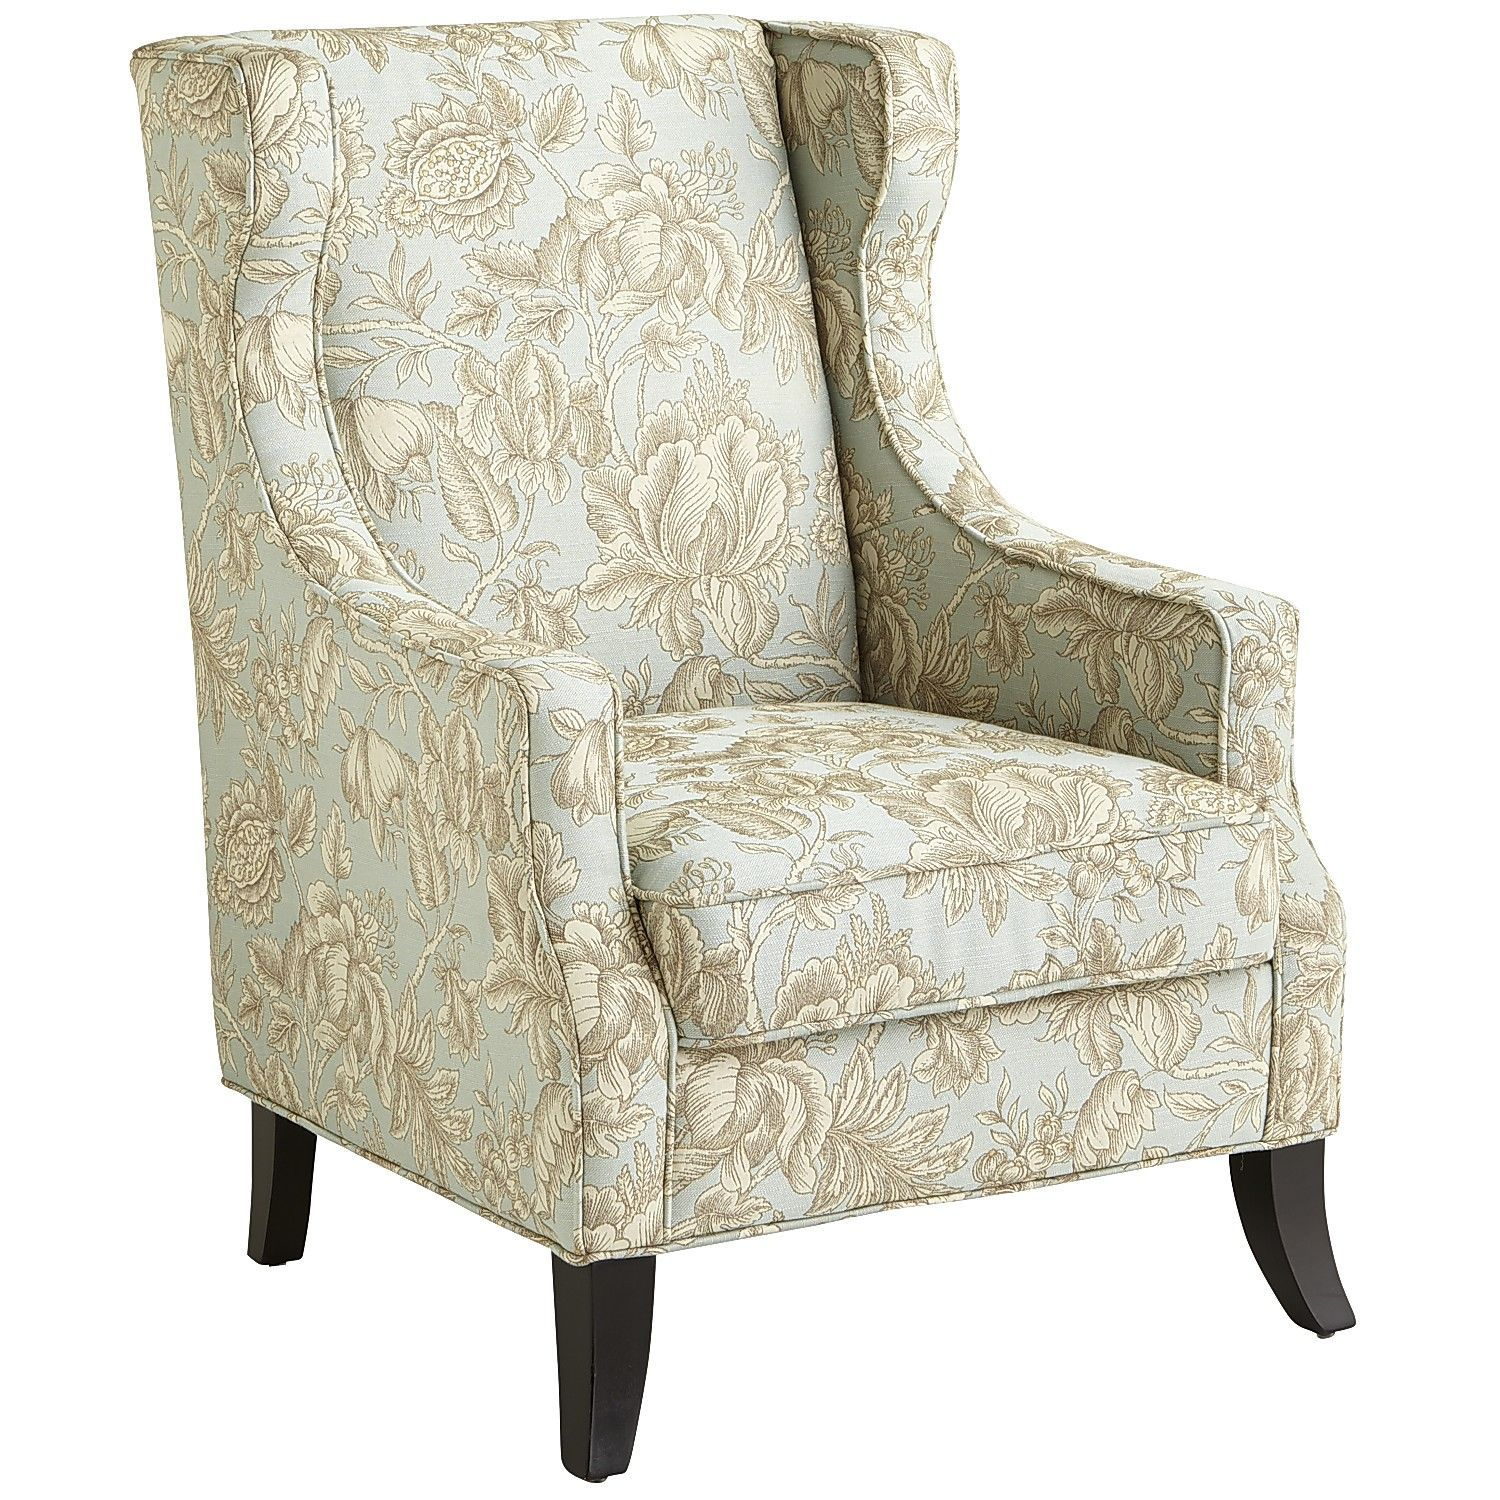 Alec Blue Floral Wing Chair Wing chair, Wingback chair